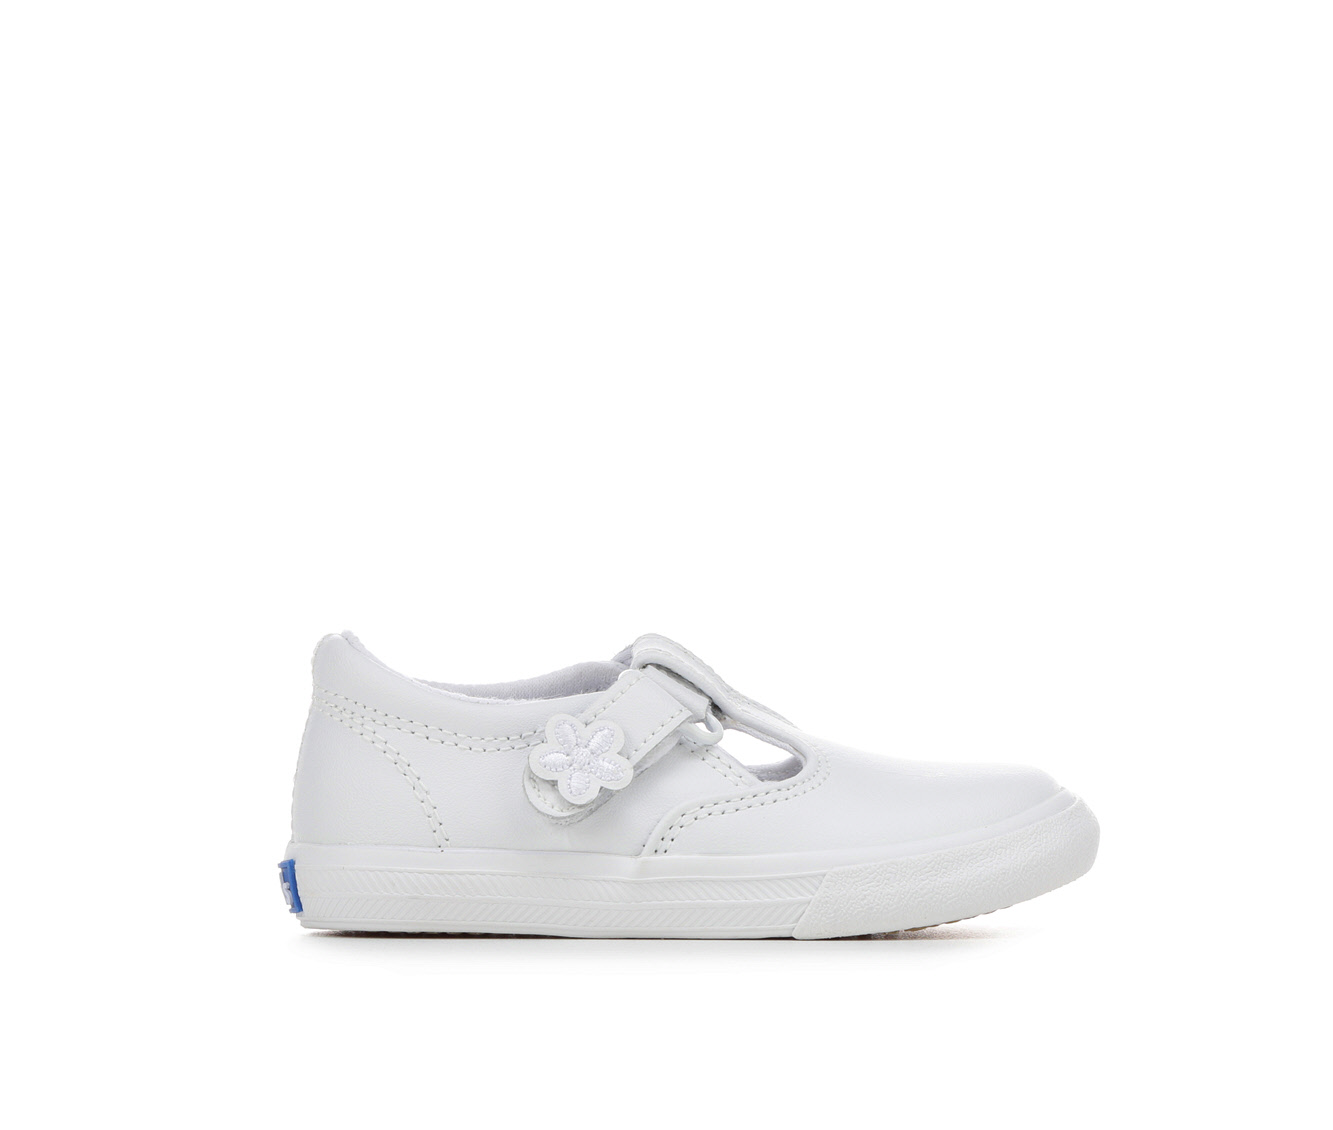 Girls' Keds Infant Daphne/Blink Sneakers (White)